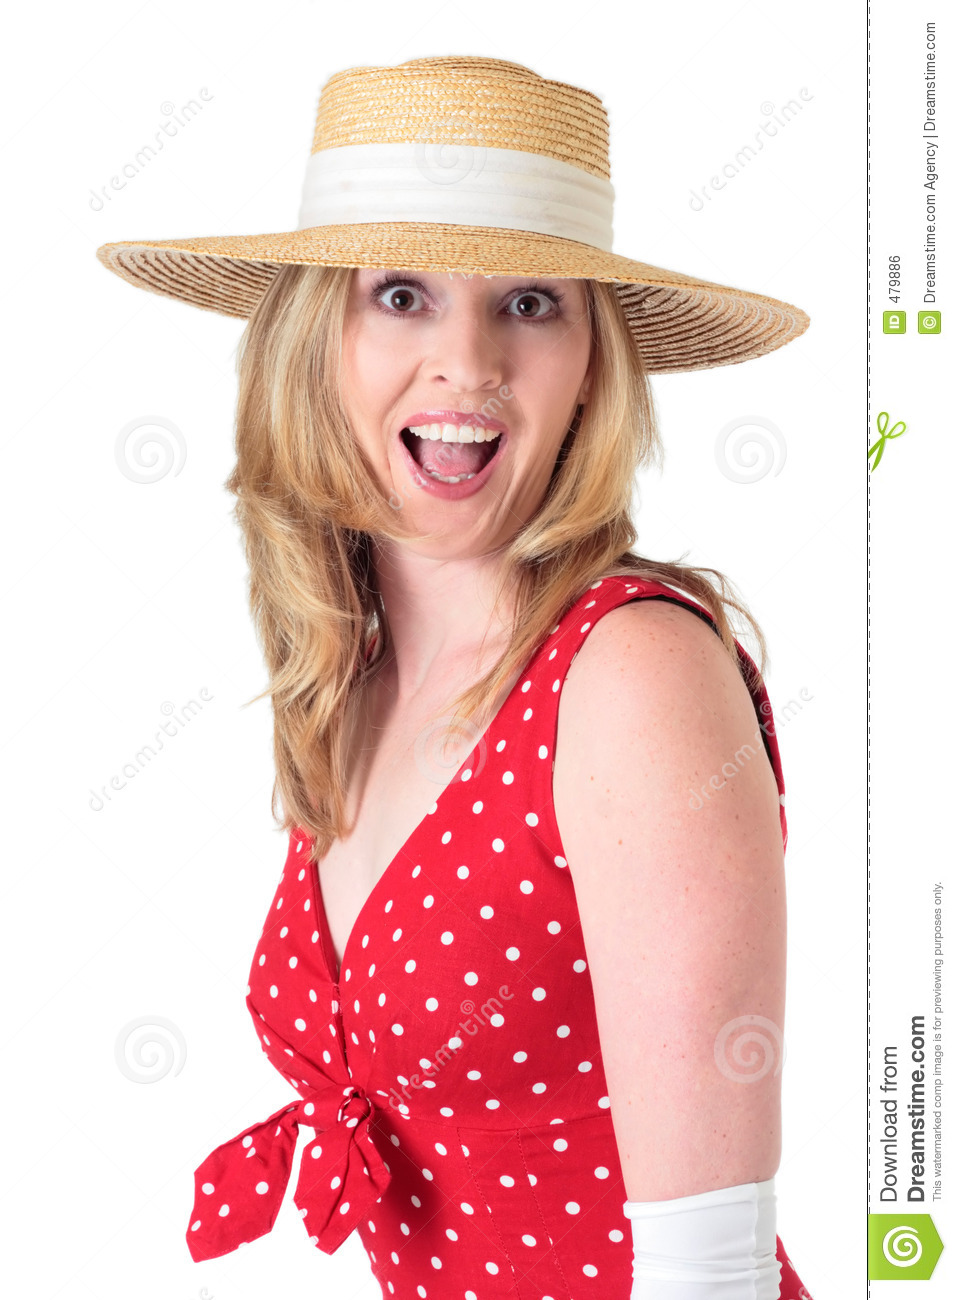 Woman in fifties fashion with surprised expression